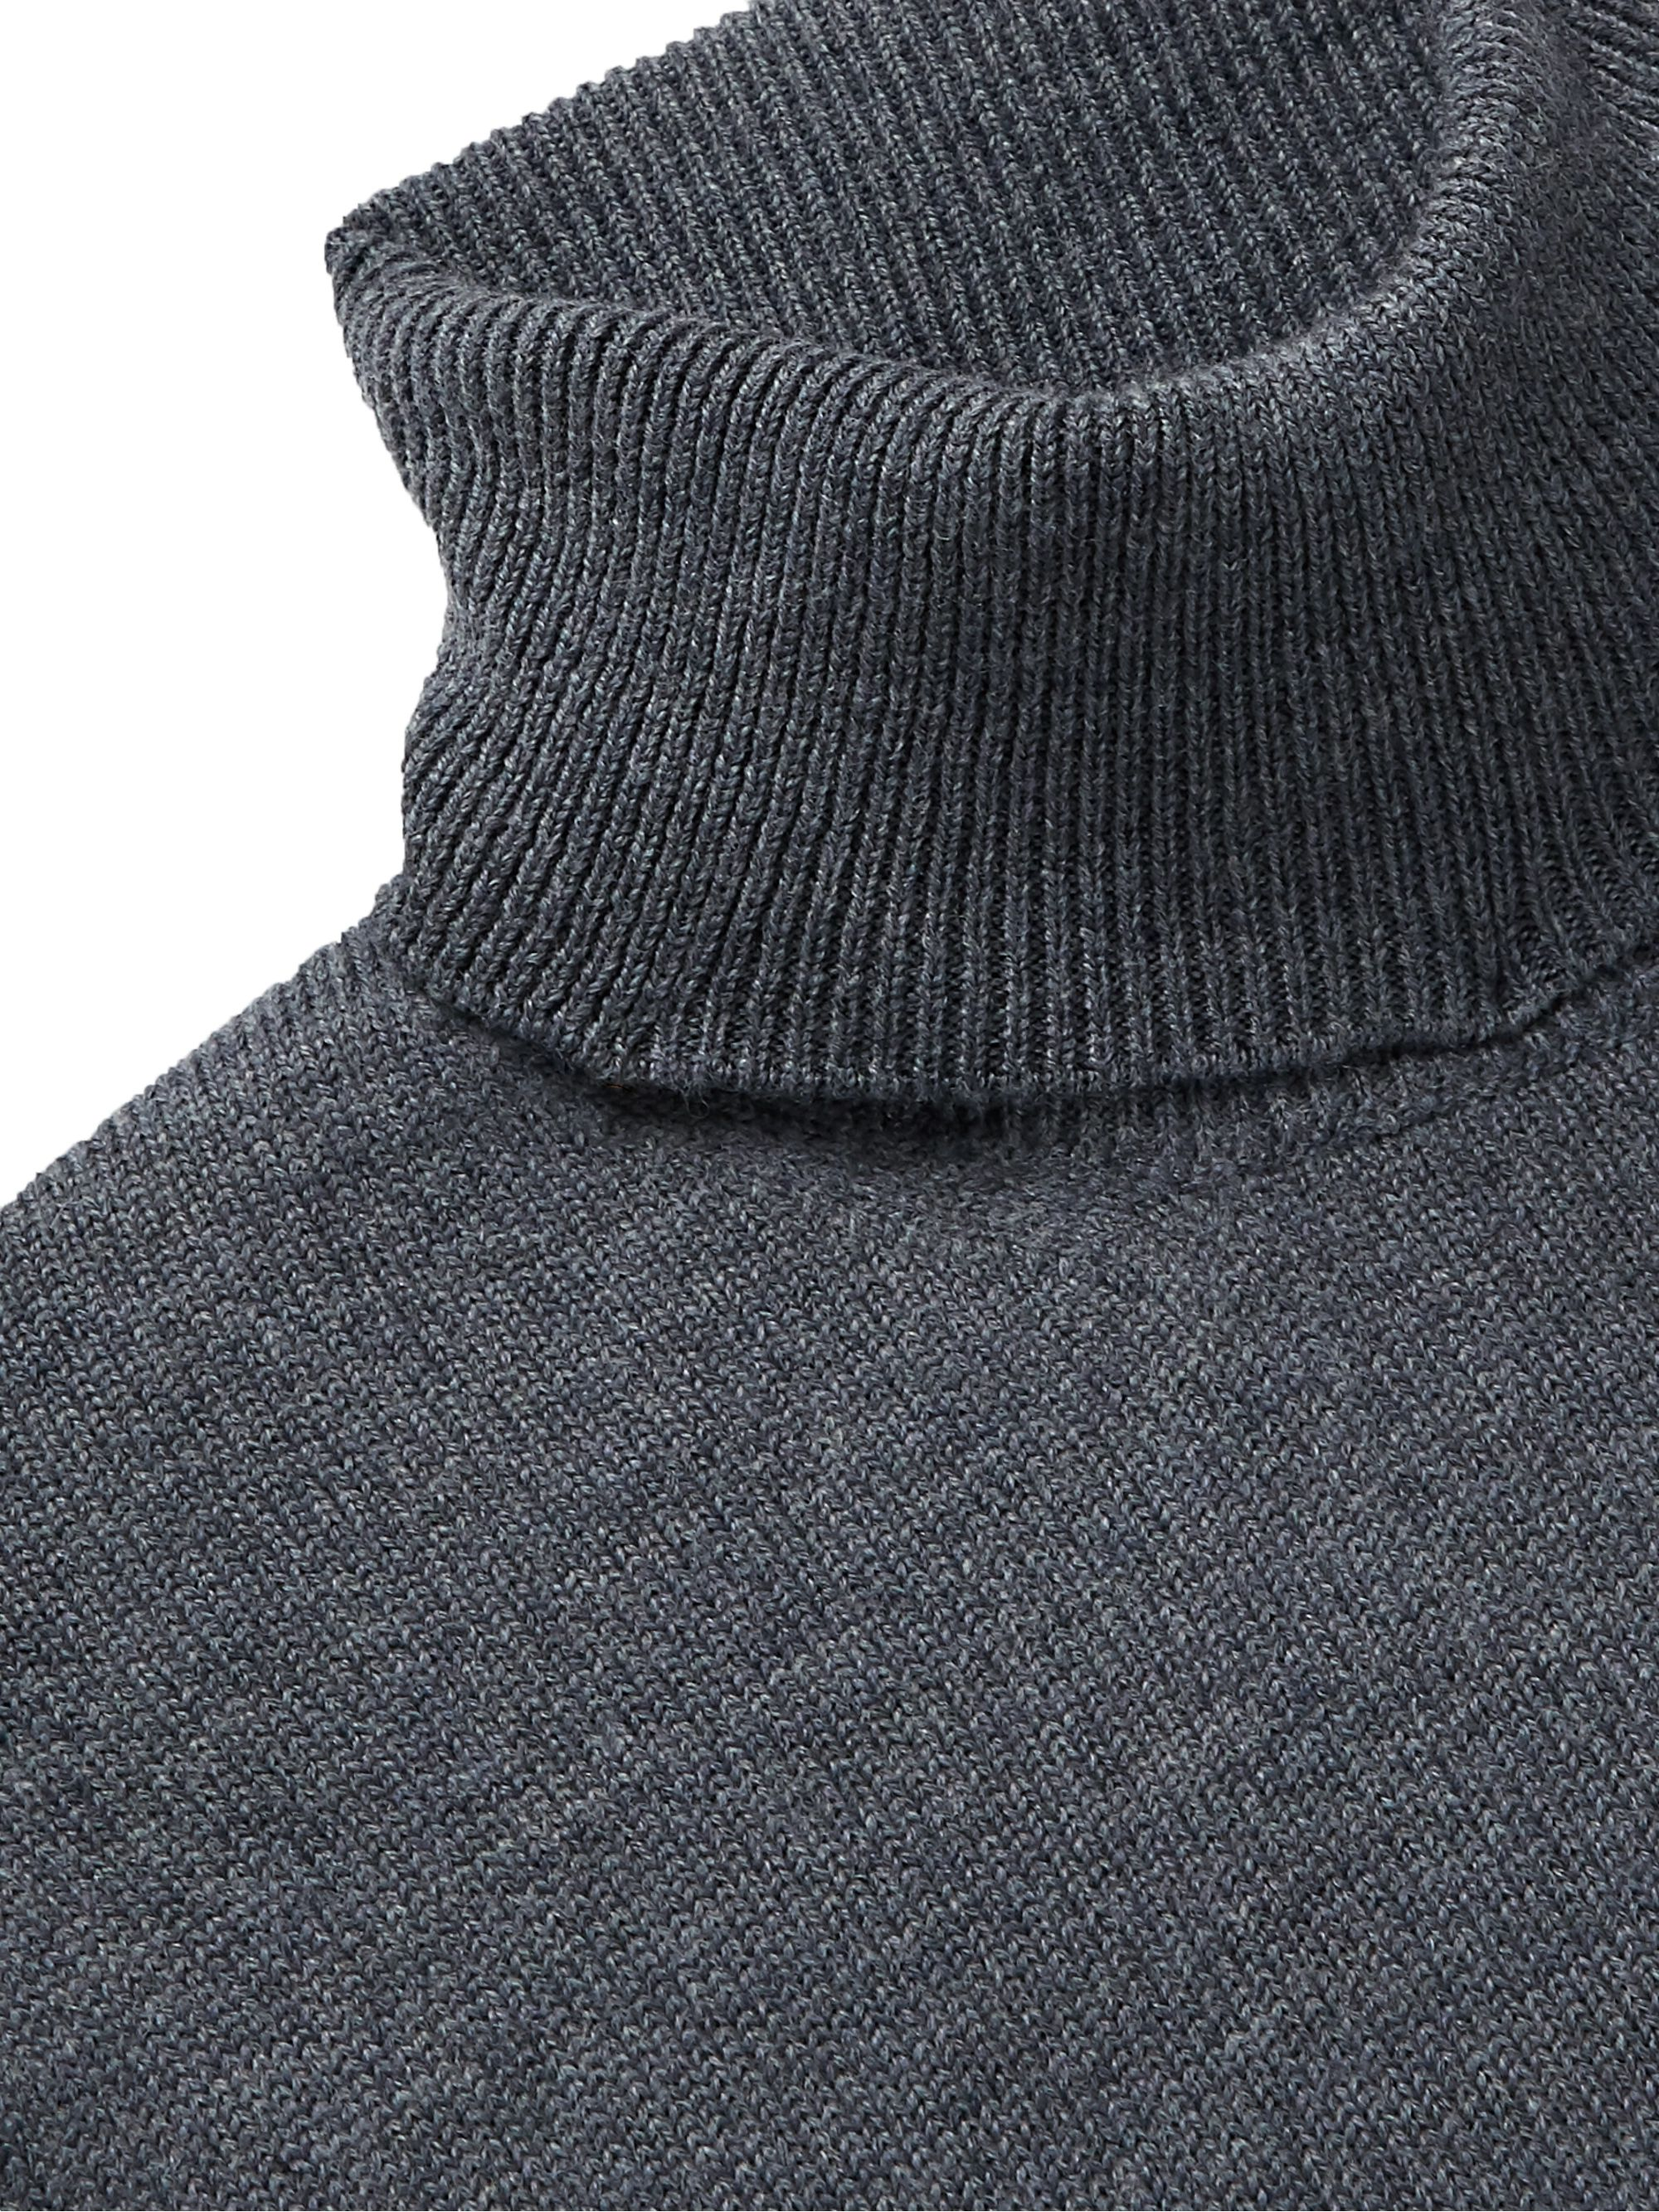 Dark Gray Mélange Merino Wool Rollneck Sweater | Saman Amel